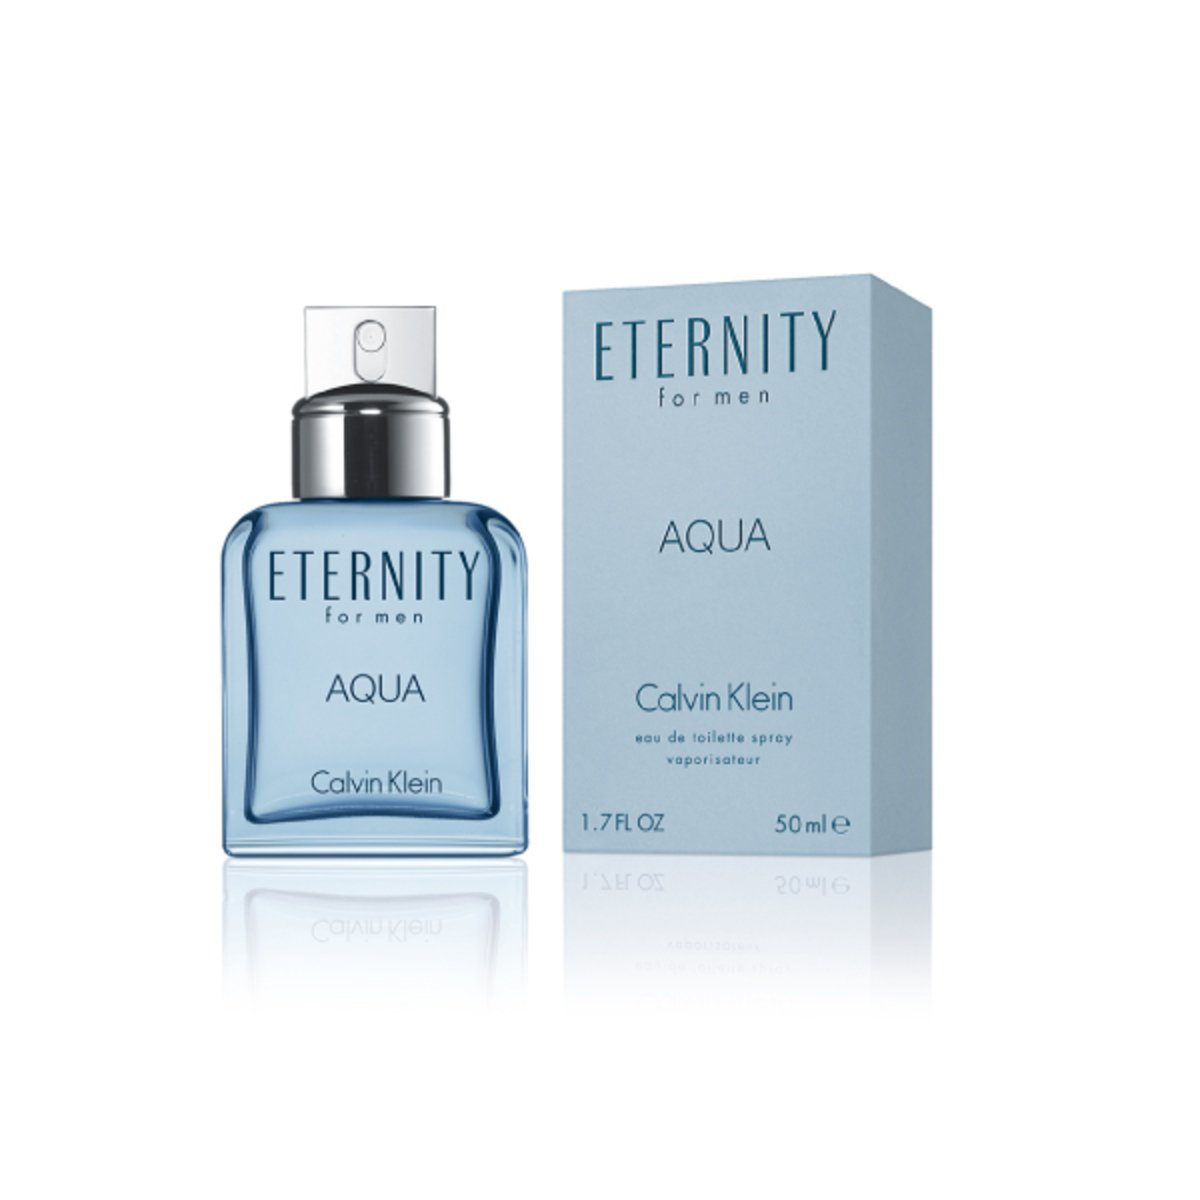 Calvin Klein Ck Eternity Aqua For Men Edt Spray 50ml Go Shop Man